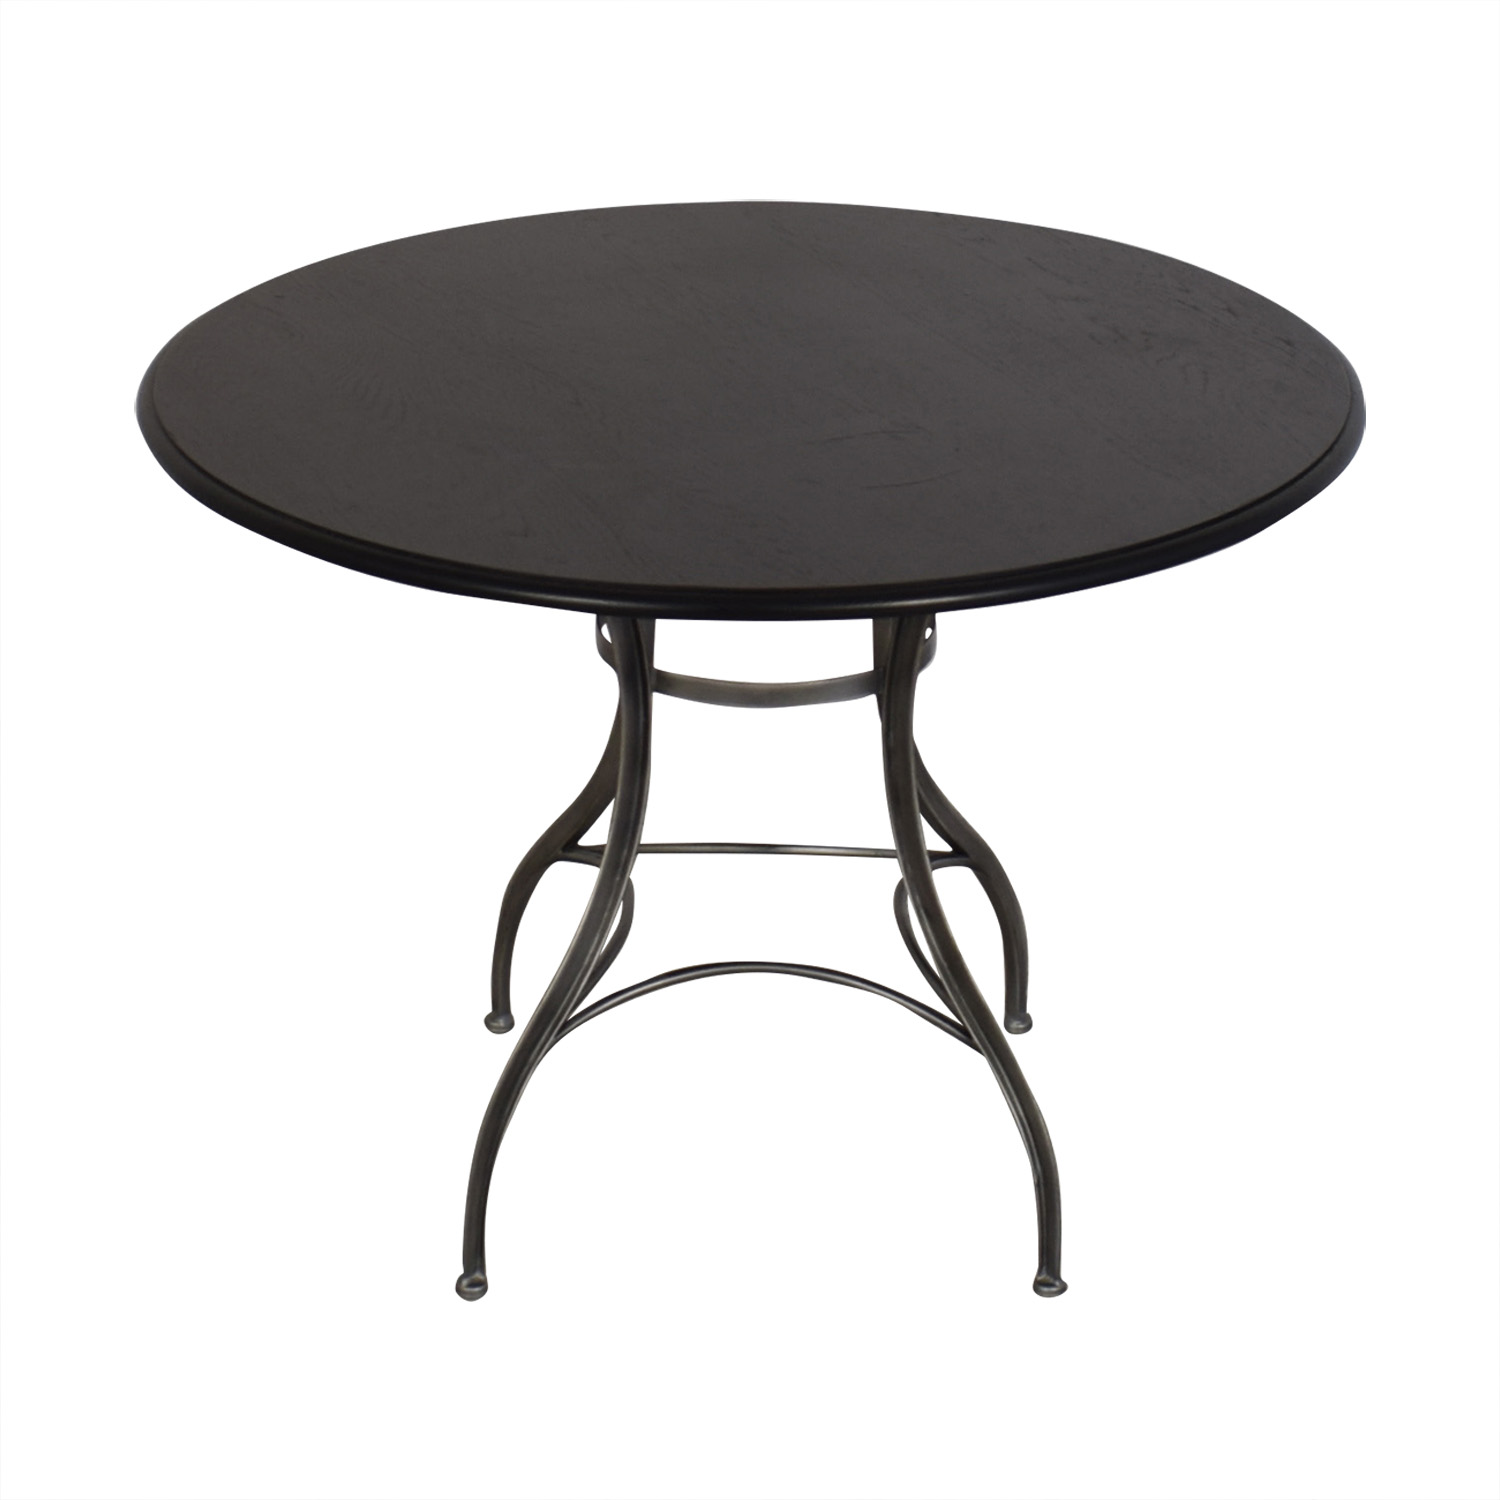 Ethan Allen Ethan Allen Round Dining Table used